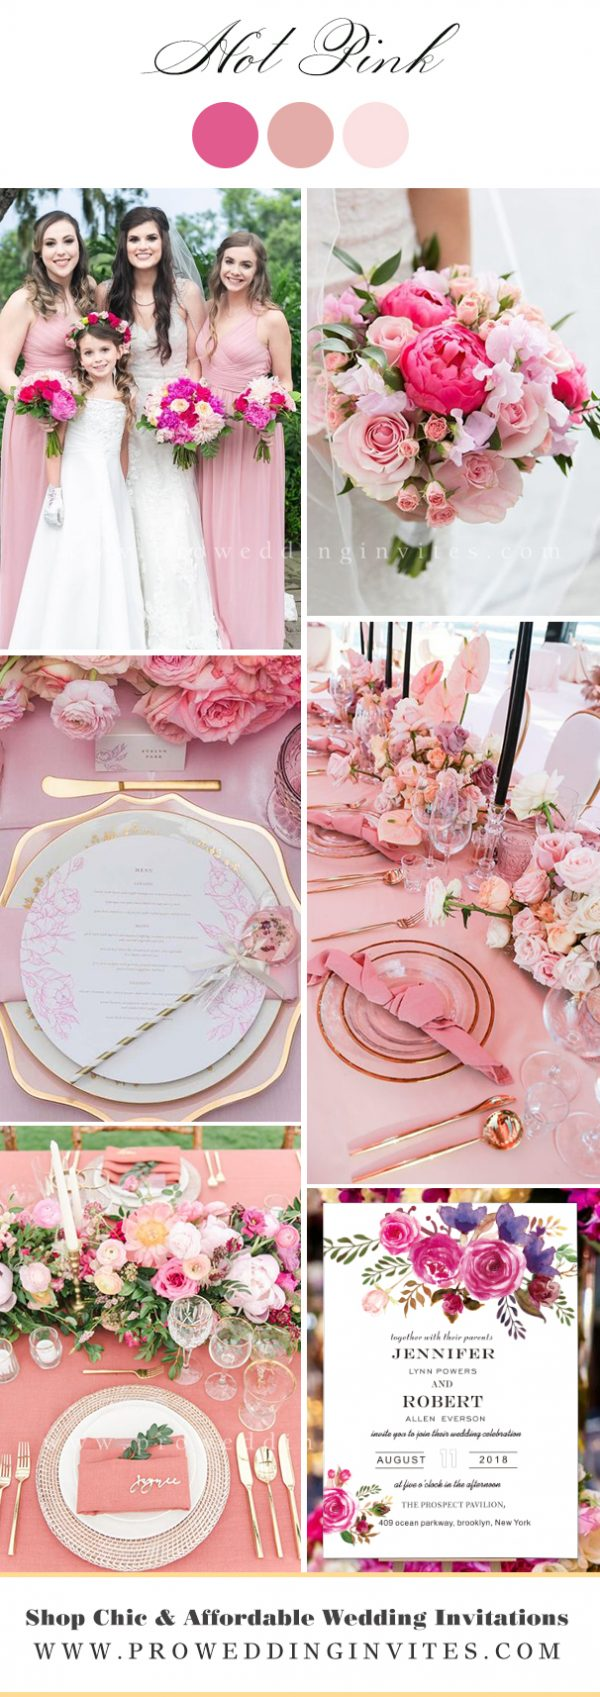 Hot Pink Wedding Color Ideasvvvvvvvvvvv